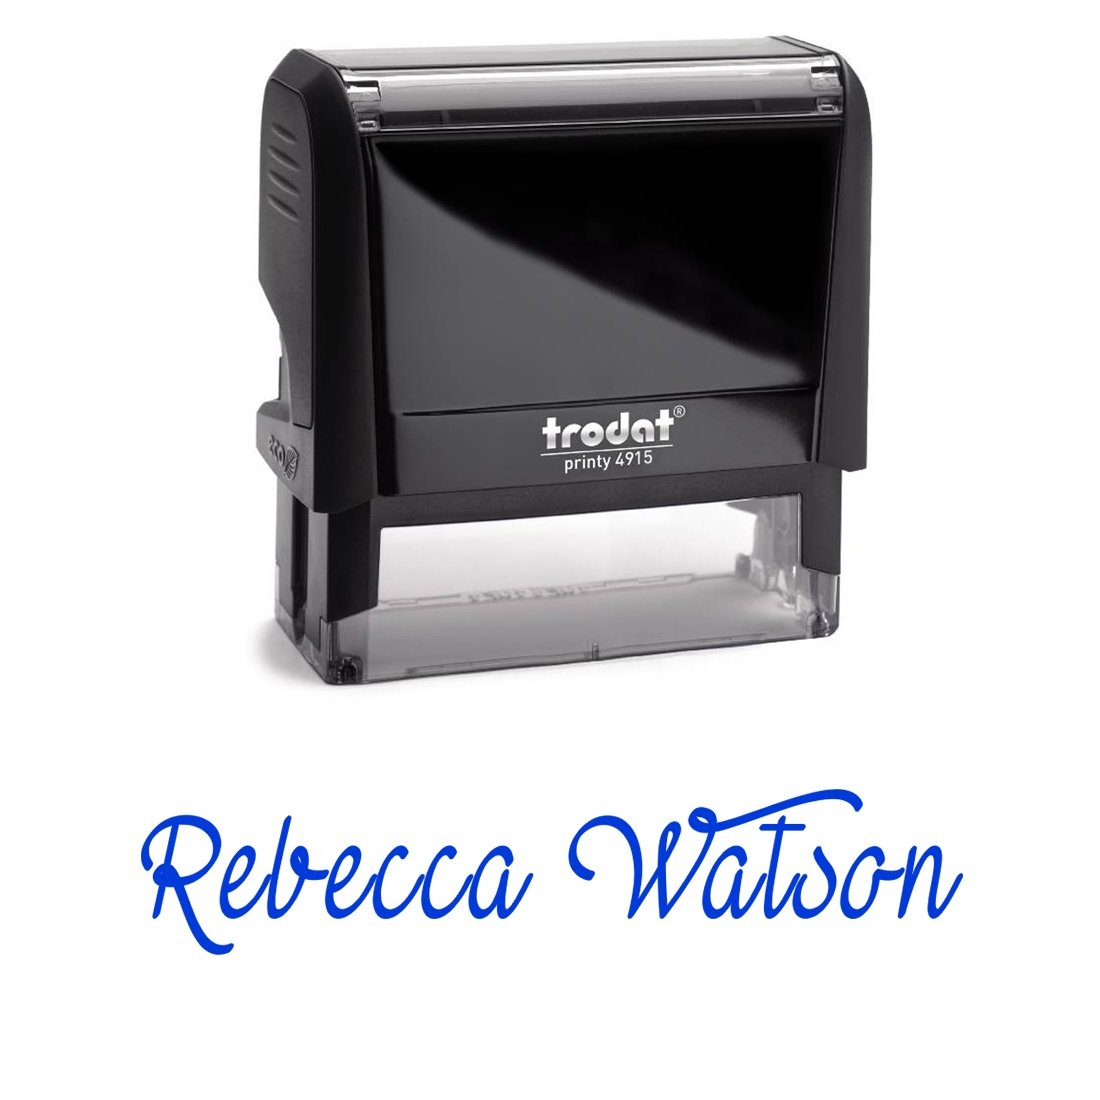 Personalized Custom Signature Stamp. Great Labelling Self Inking Stamp With Unique Font. Perfect For Bank Deposits, Registered Nurses, Home, Office Or School Blue Ink, Self Inking Stamp